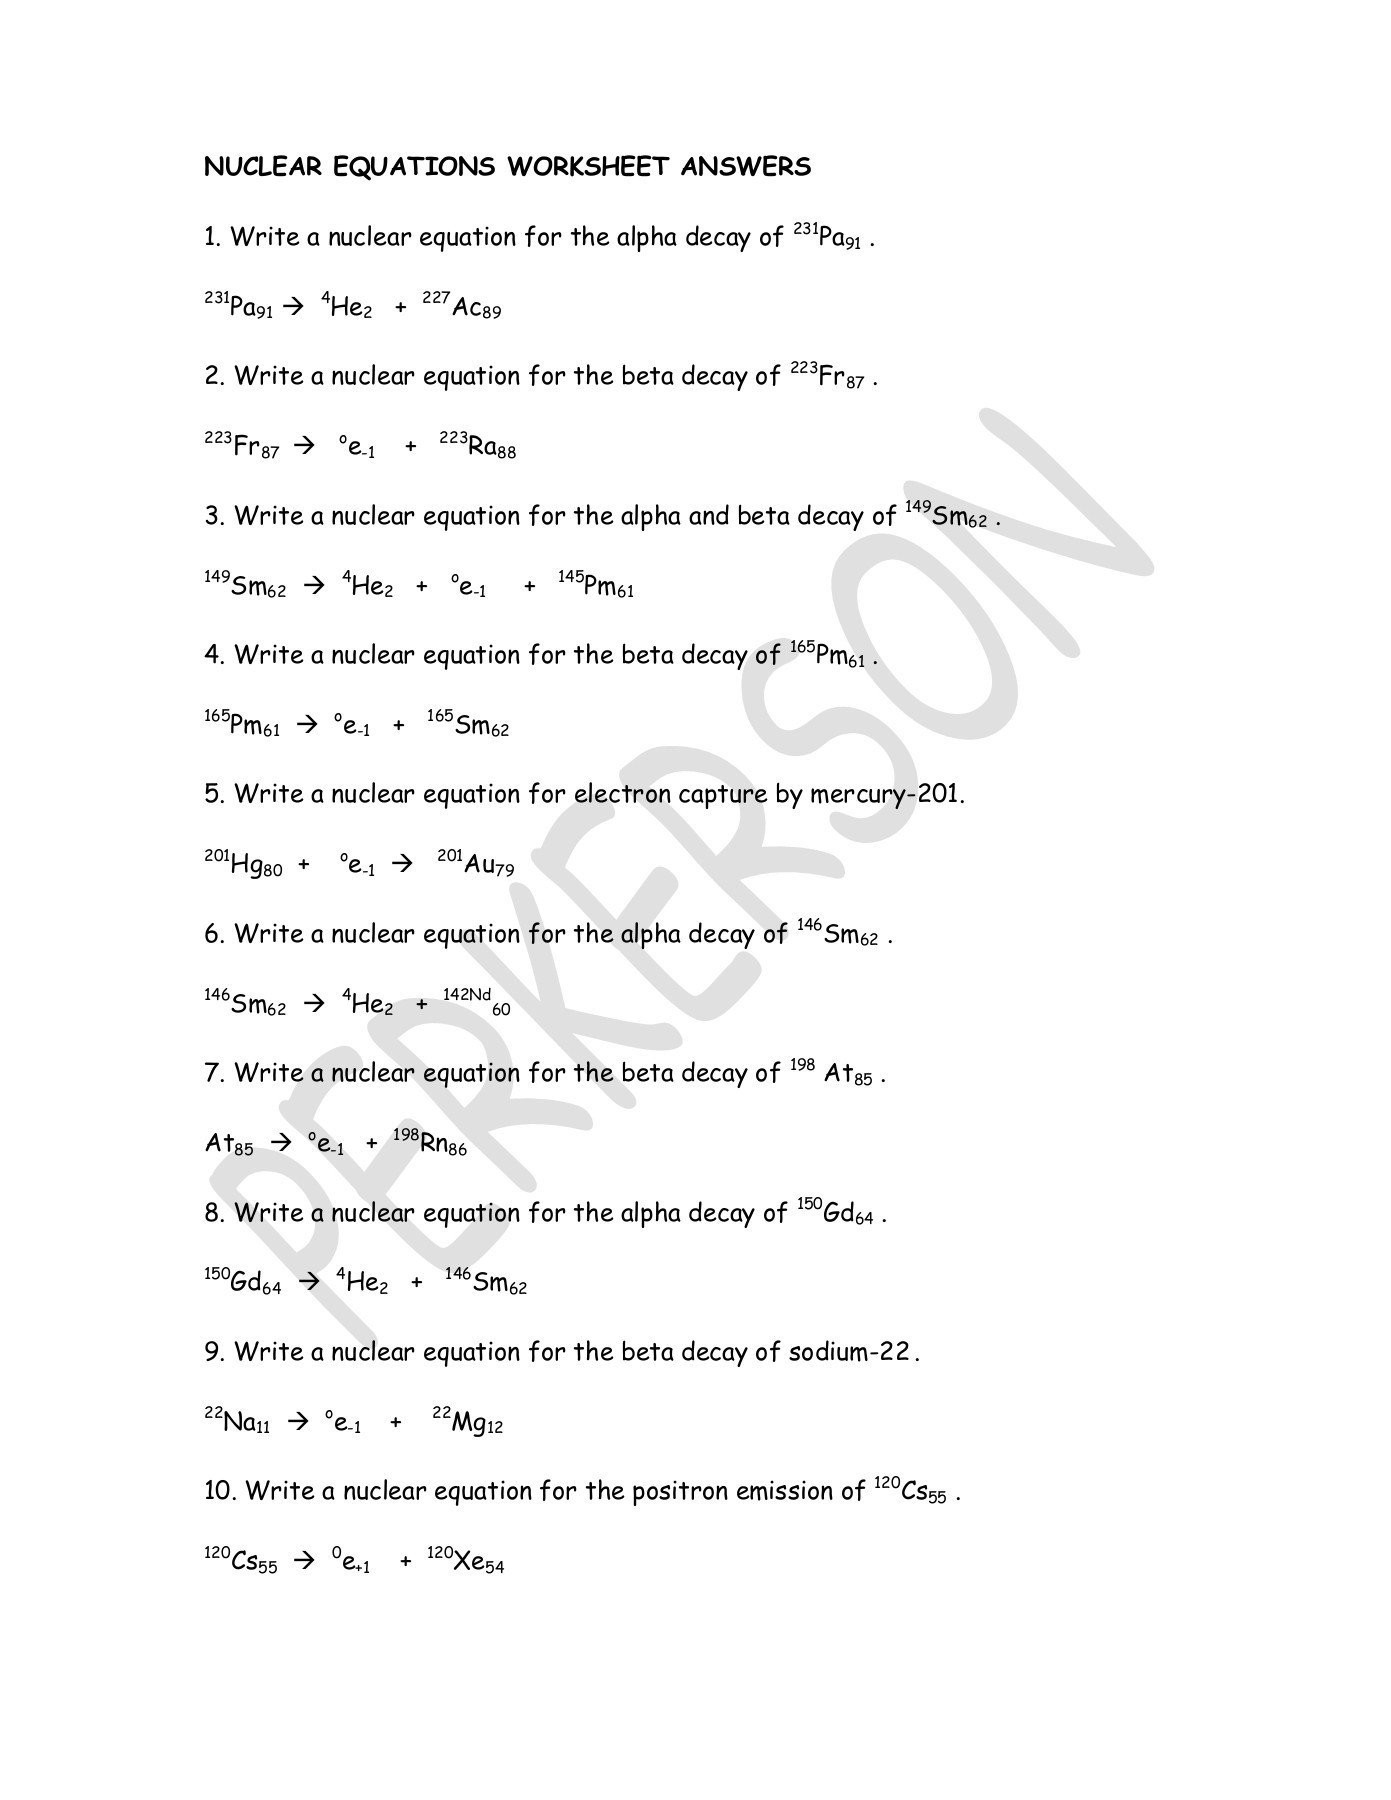 Radioactive Decay Worksheet Answers 20 Nuclear Equations Worksheet Answers